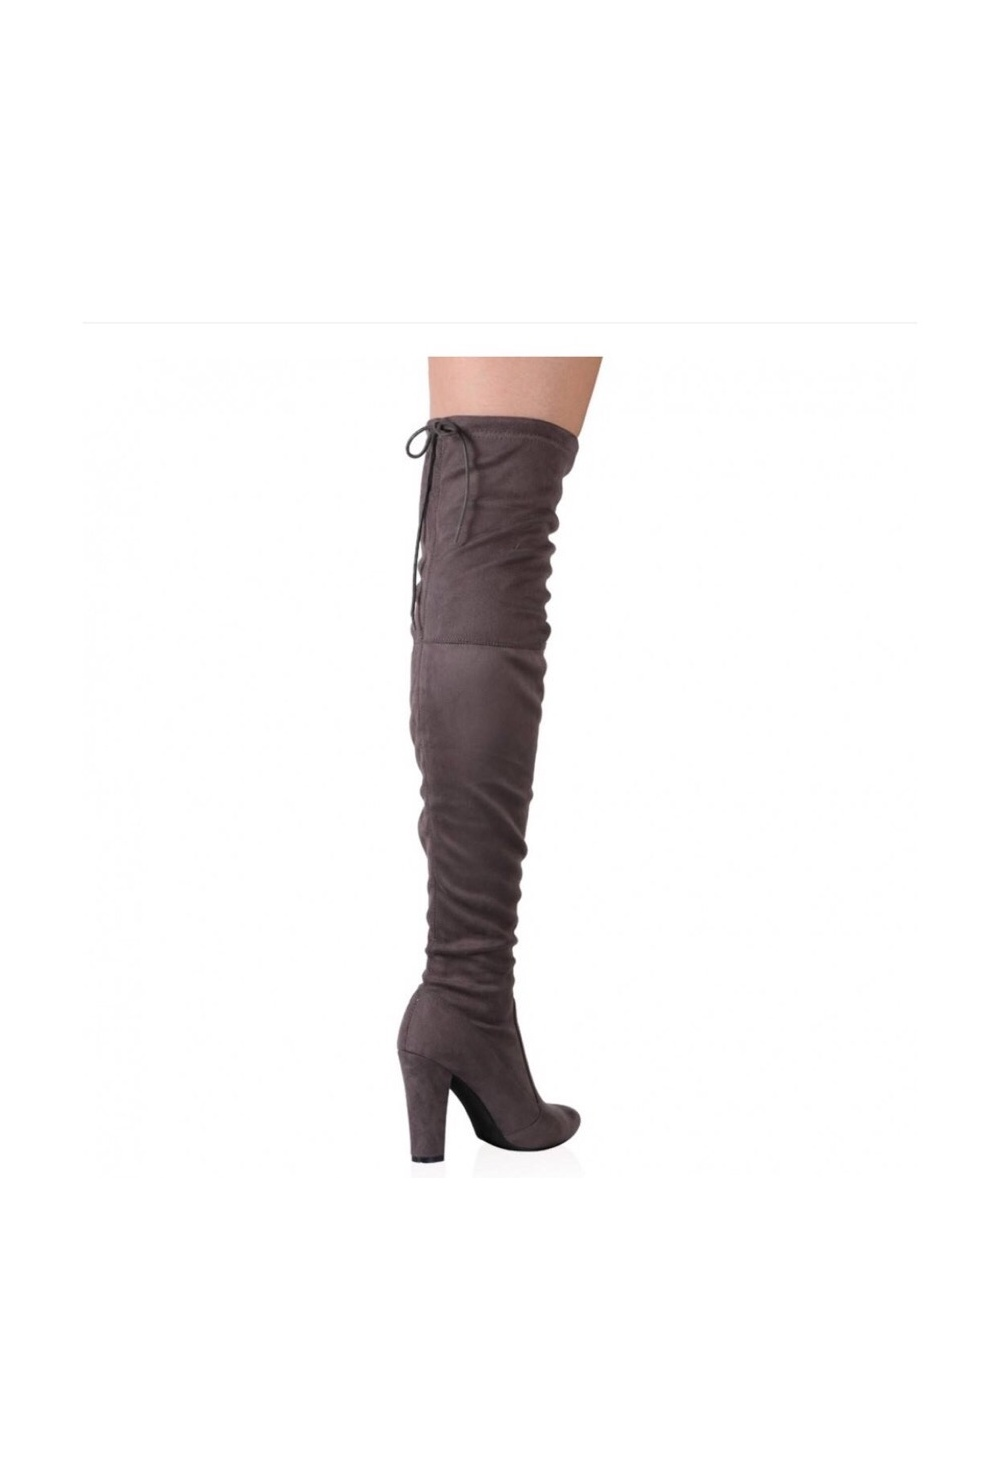 Make a show stopping entrance with Dune London's new range of ladies over the knee boots. Wear with jeans for effortless style or pair with a skirt for the ultimate night out look. The new Winter essential, add a statement heeled pair or try the red boot trend or choose something timeless with thigh high black suede and sock boot styles.